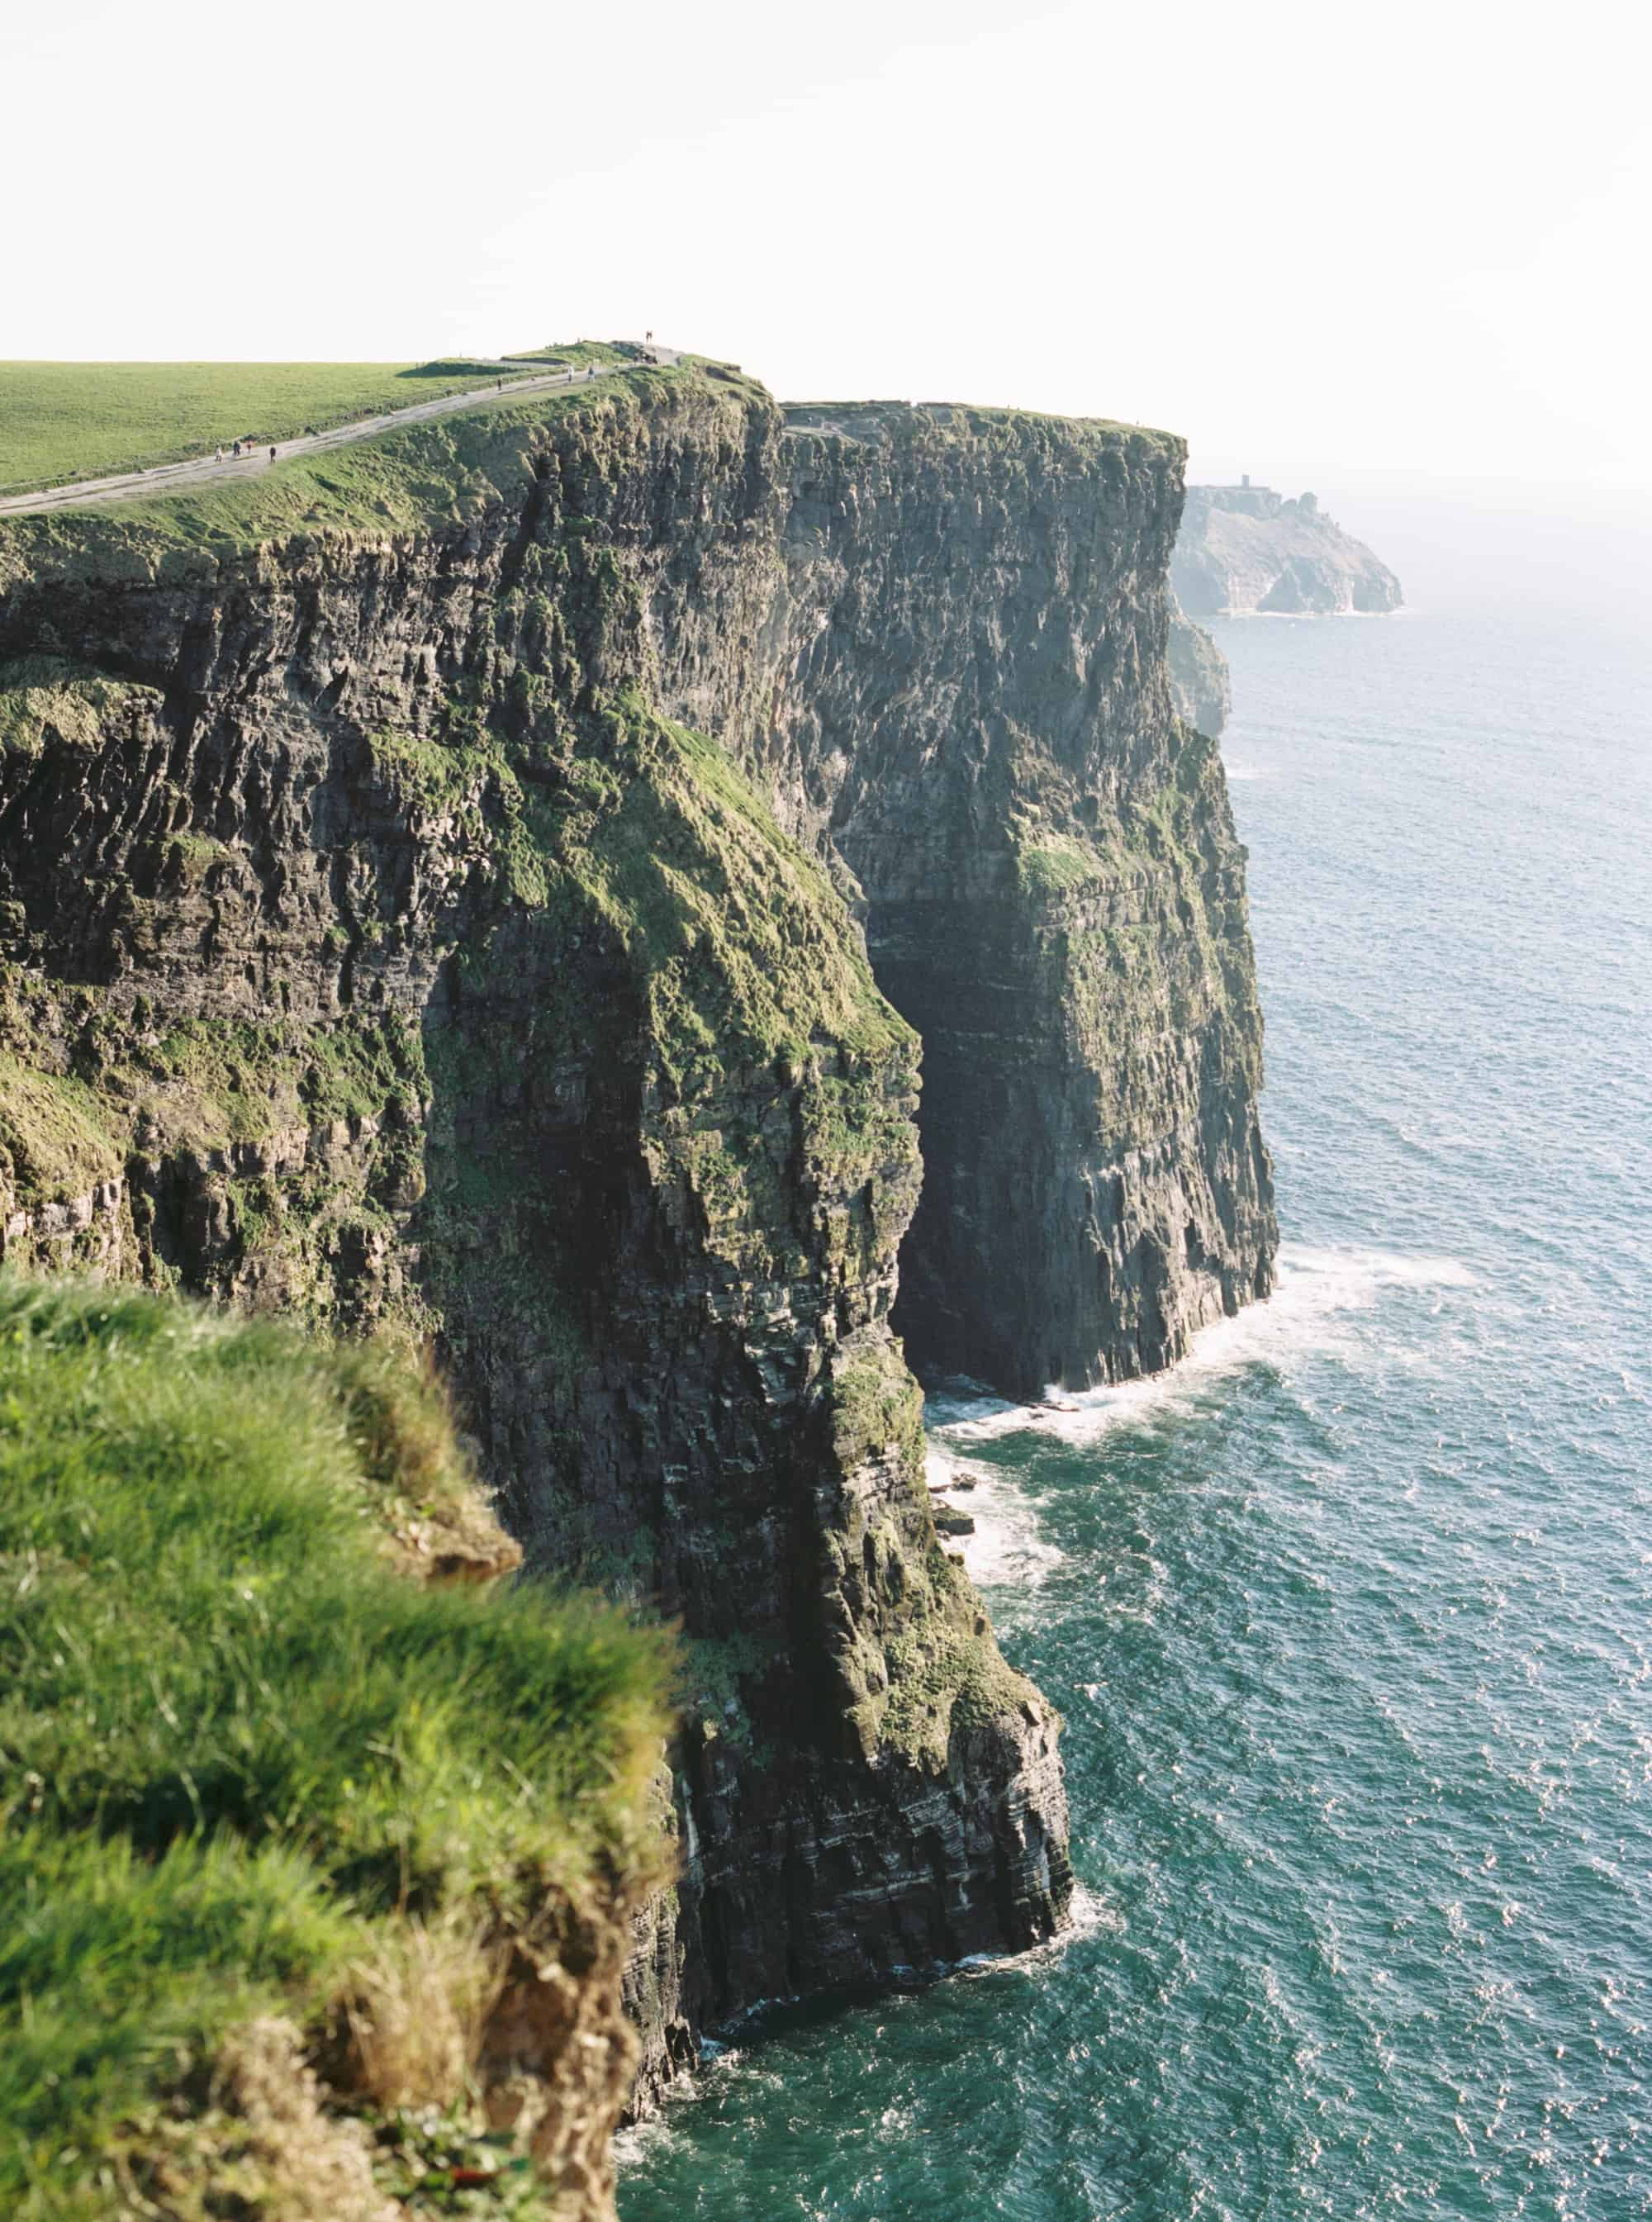 Cliffs of Moher in Liscannor, Co Clare, Ireland photographed on film by Kate Lamb of Wild in Love Photo